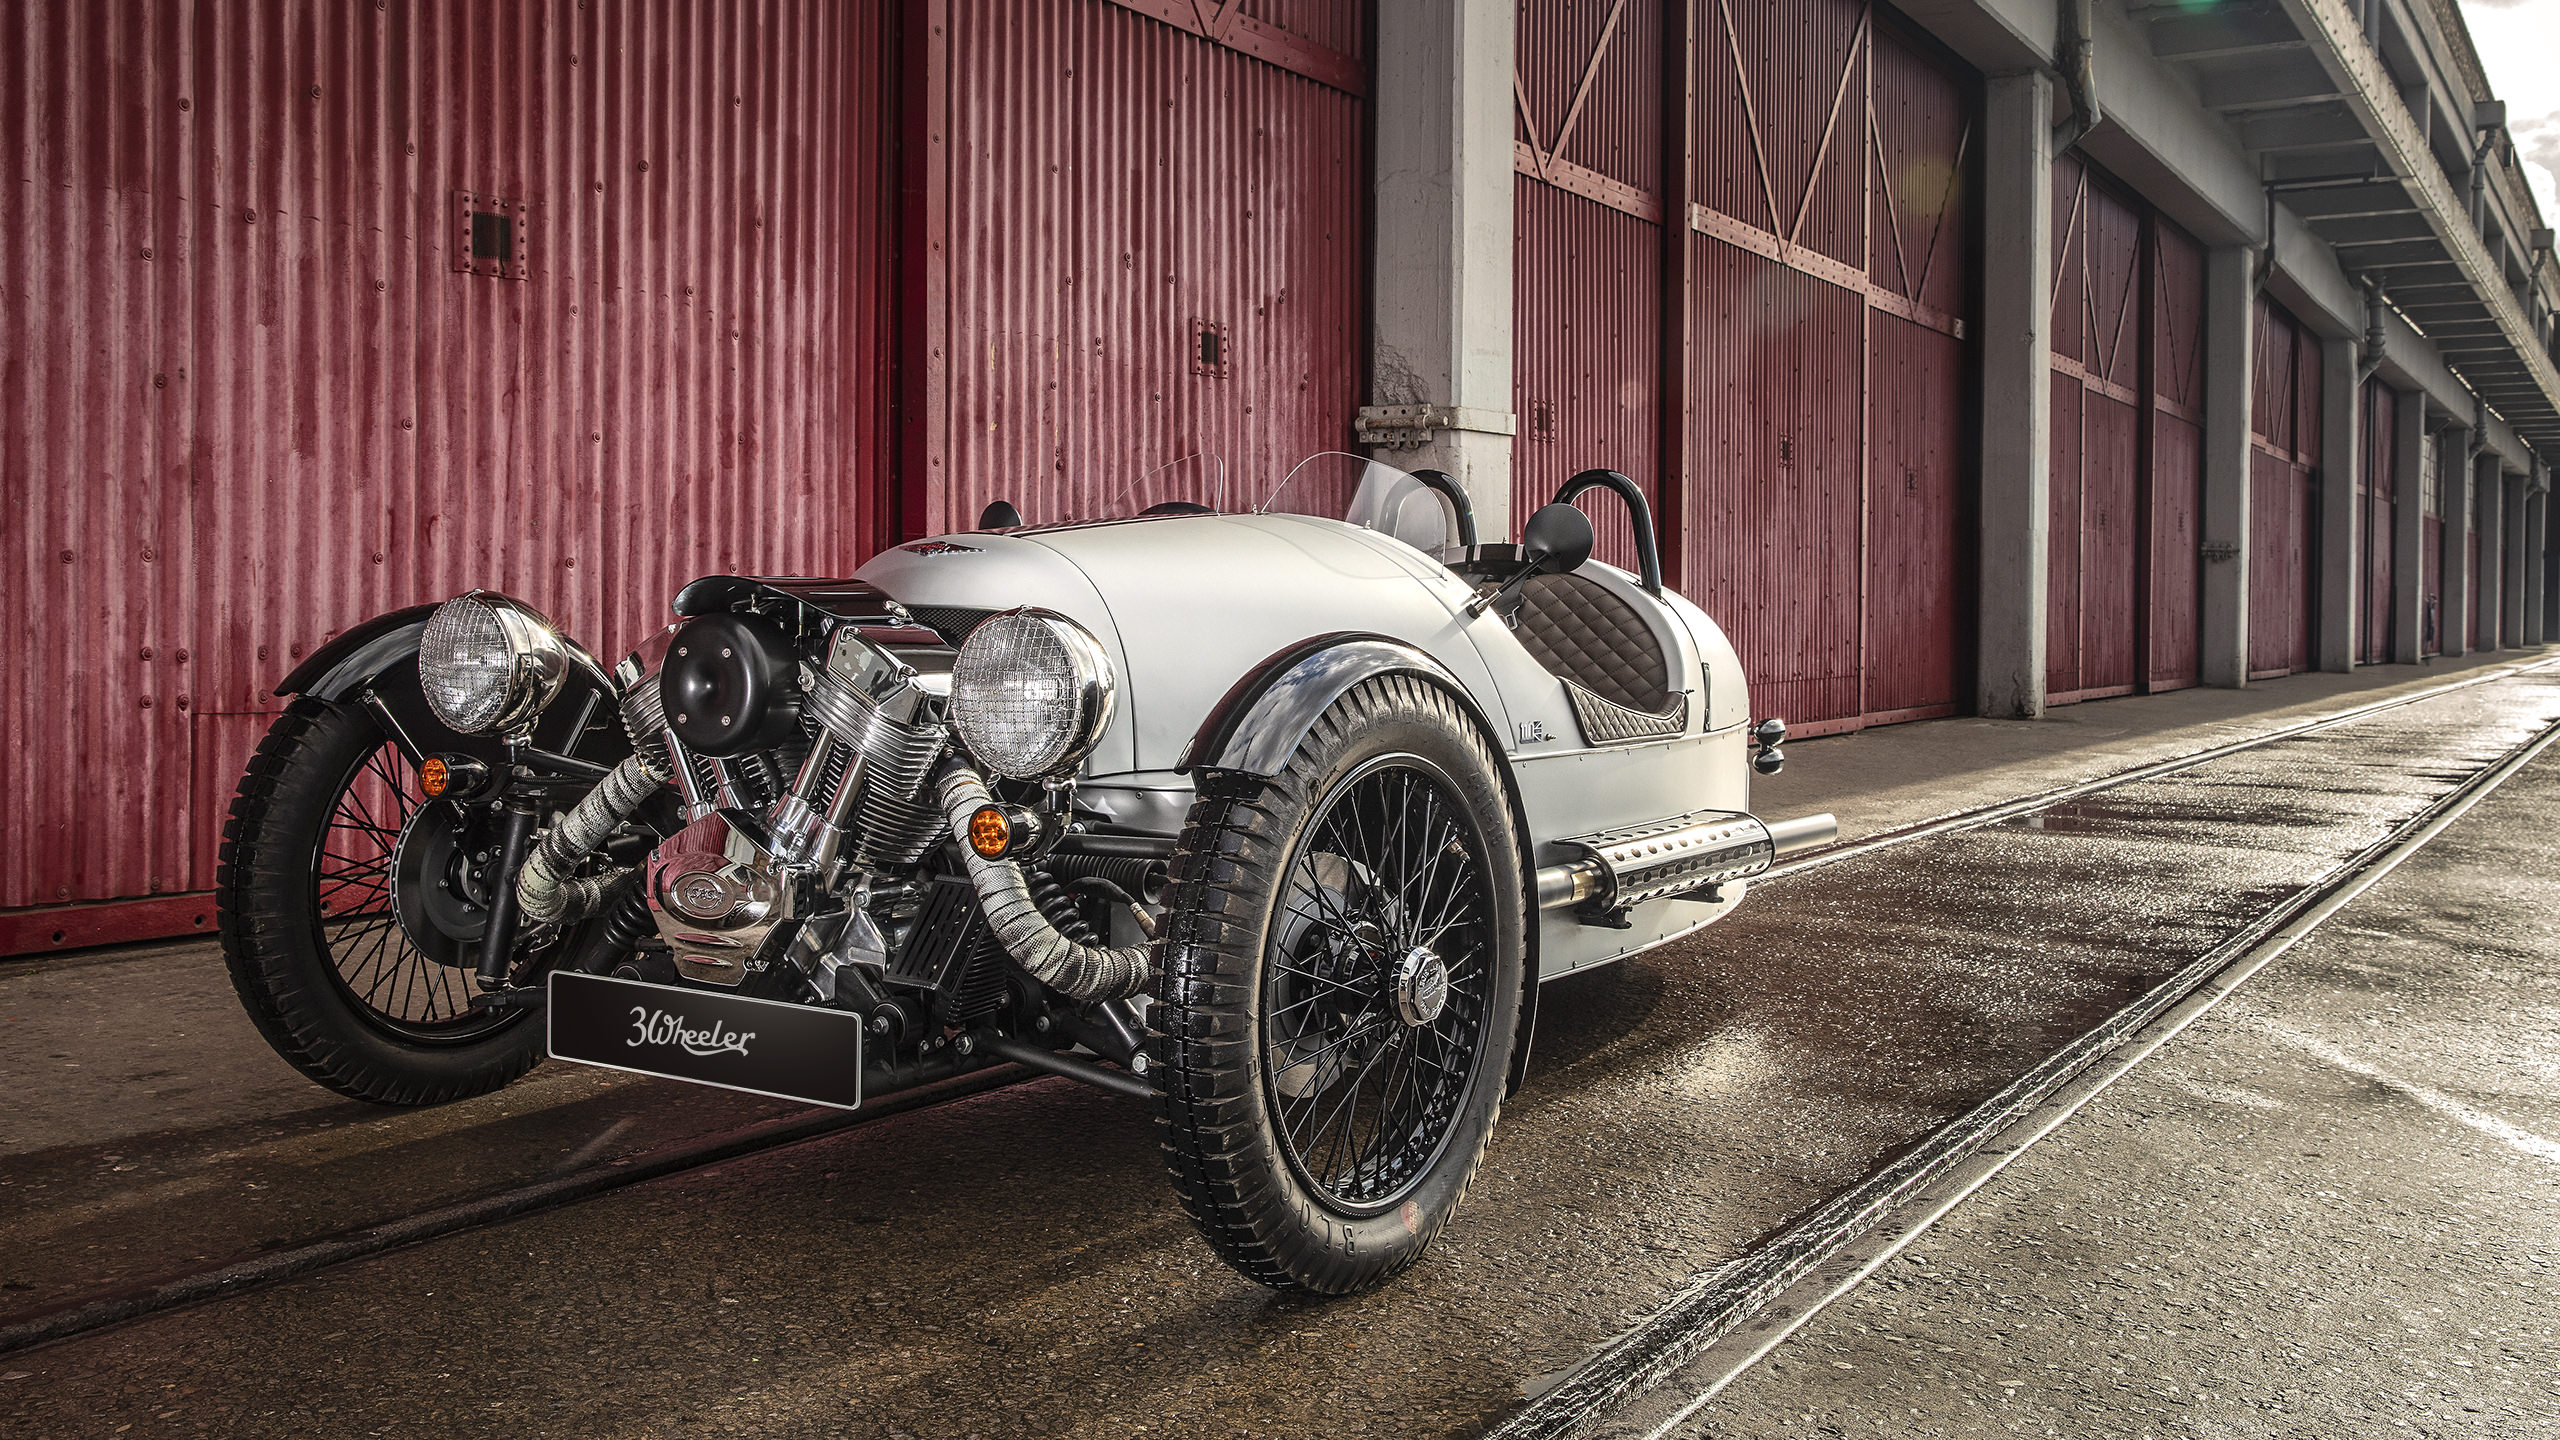 Morgan 3 Wheeler Morgan plus 4 2.0 (new car) overview vehicle details features/specification about us showroom vehicle print out £46. morgan 3 wheeler